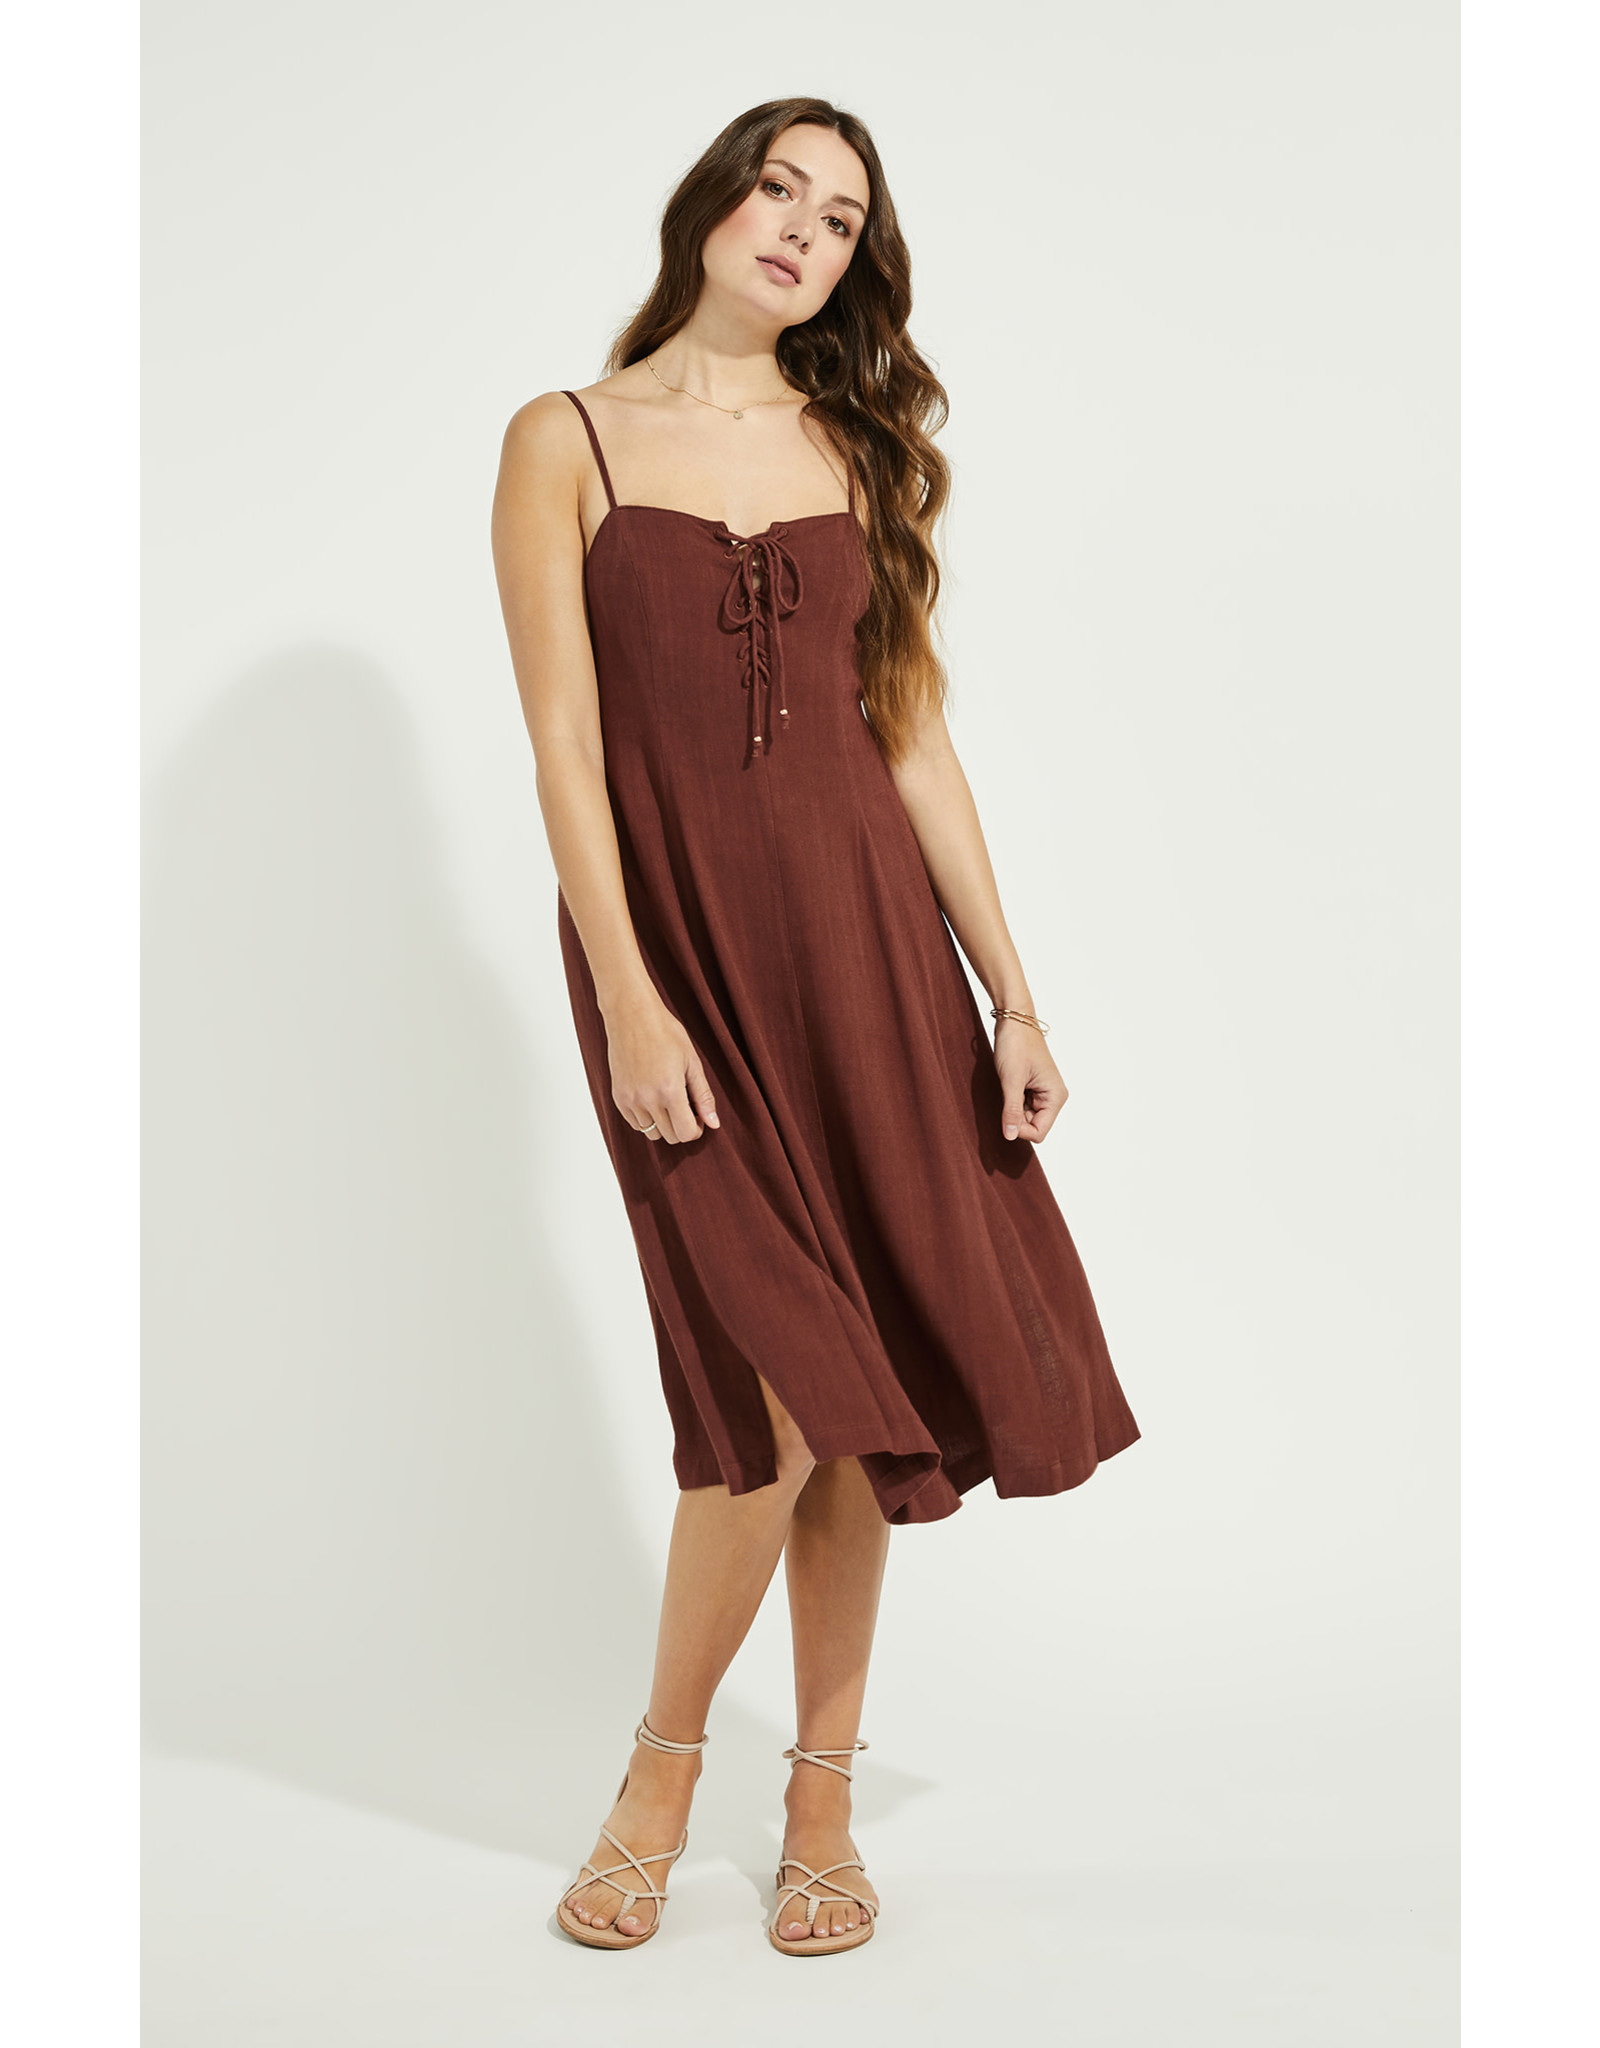 Gentle Fawn - Linen Dress in Burgundy or Cream